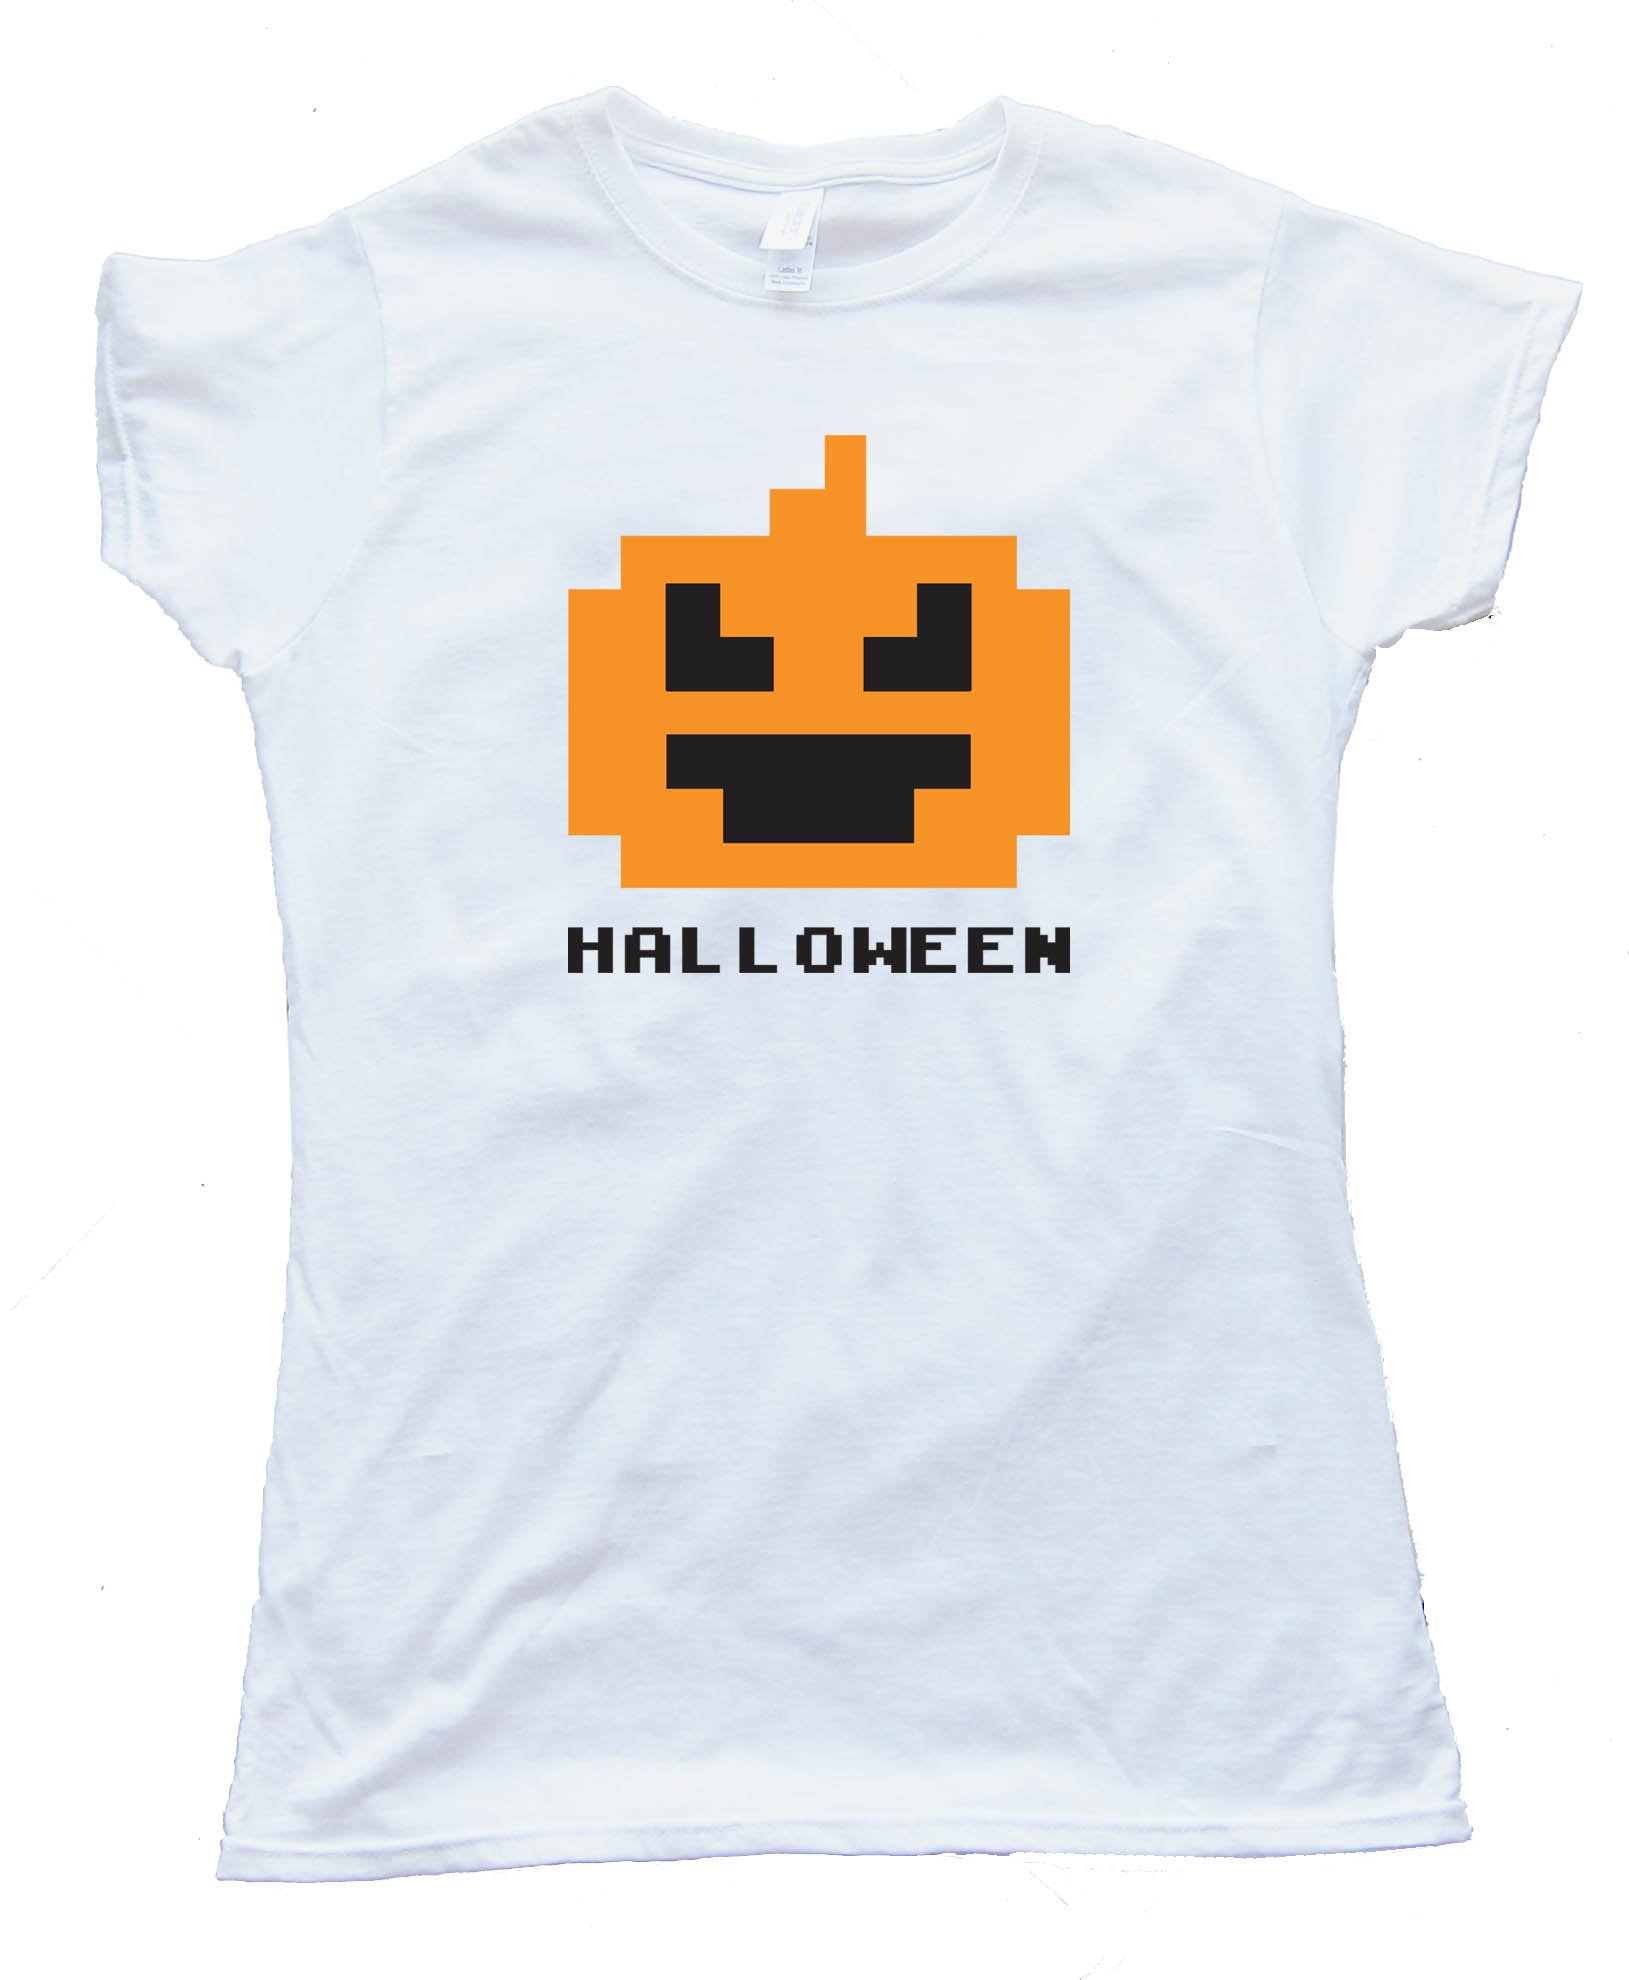 Womens 8 Bit Halloween Pumpkin - Tee Shirt